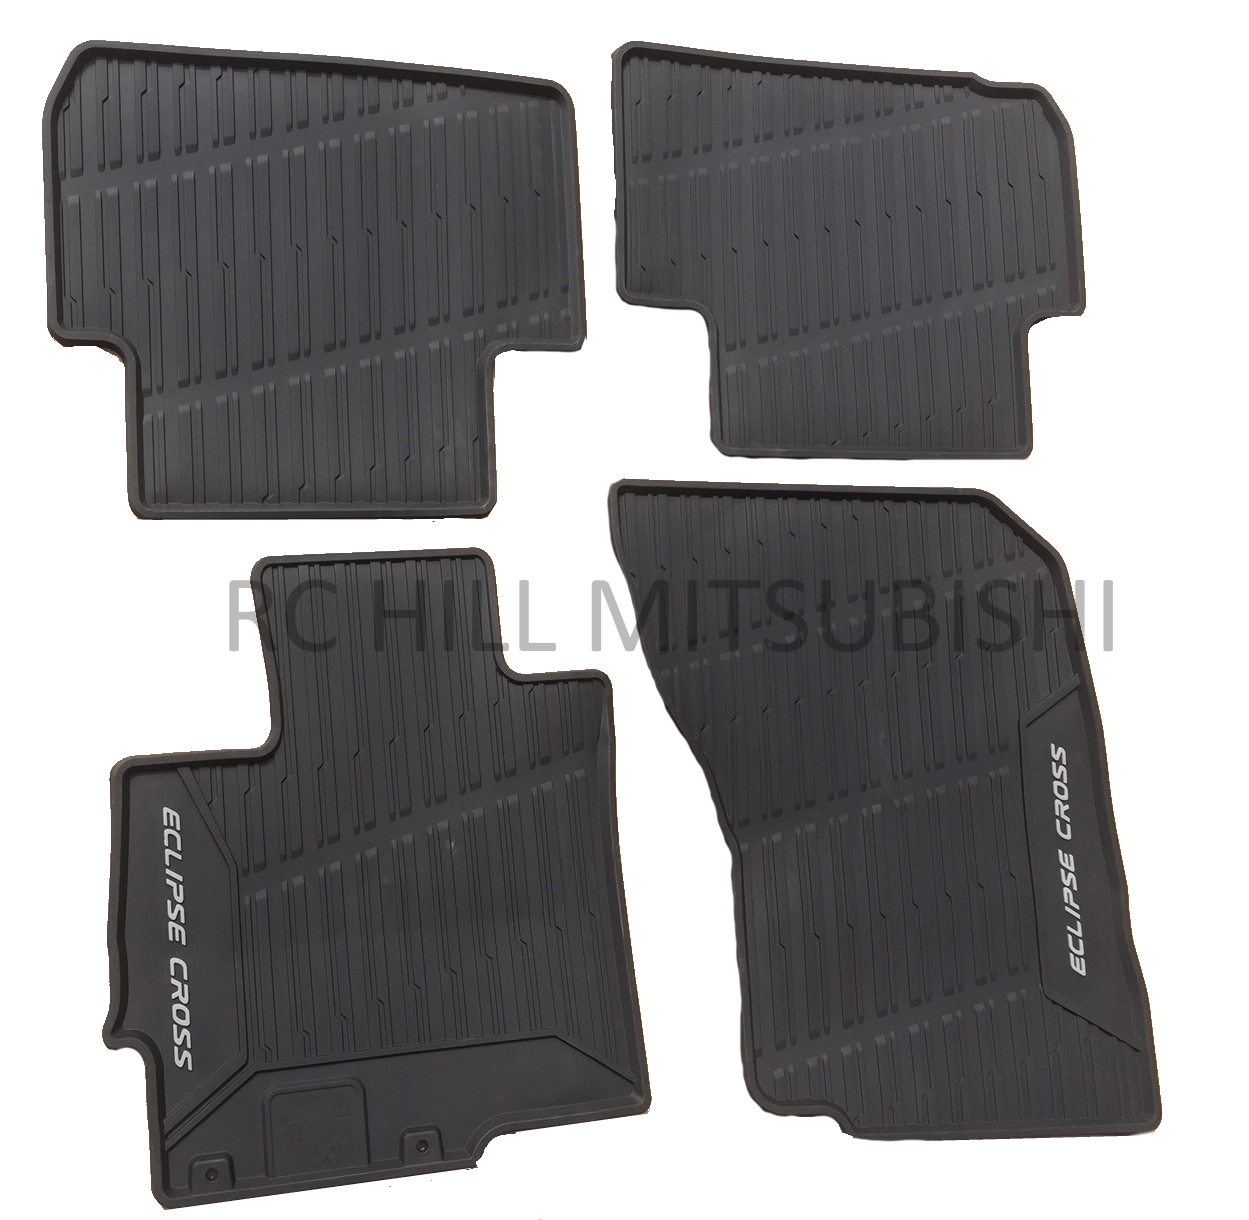 FREE SHIPPING to cont. US! MZ314979 ECLIPSE CROSS ALL WEATHER MATS - Mitsubishi (MZ314979)